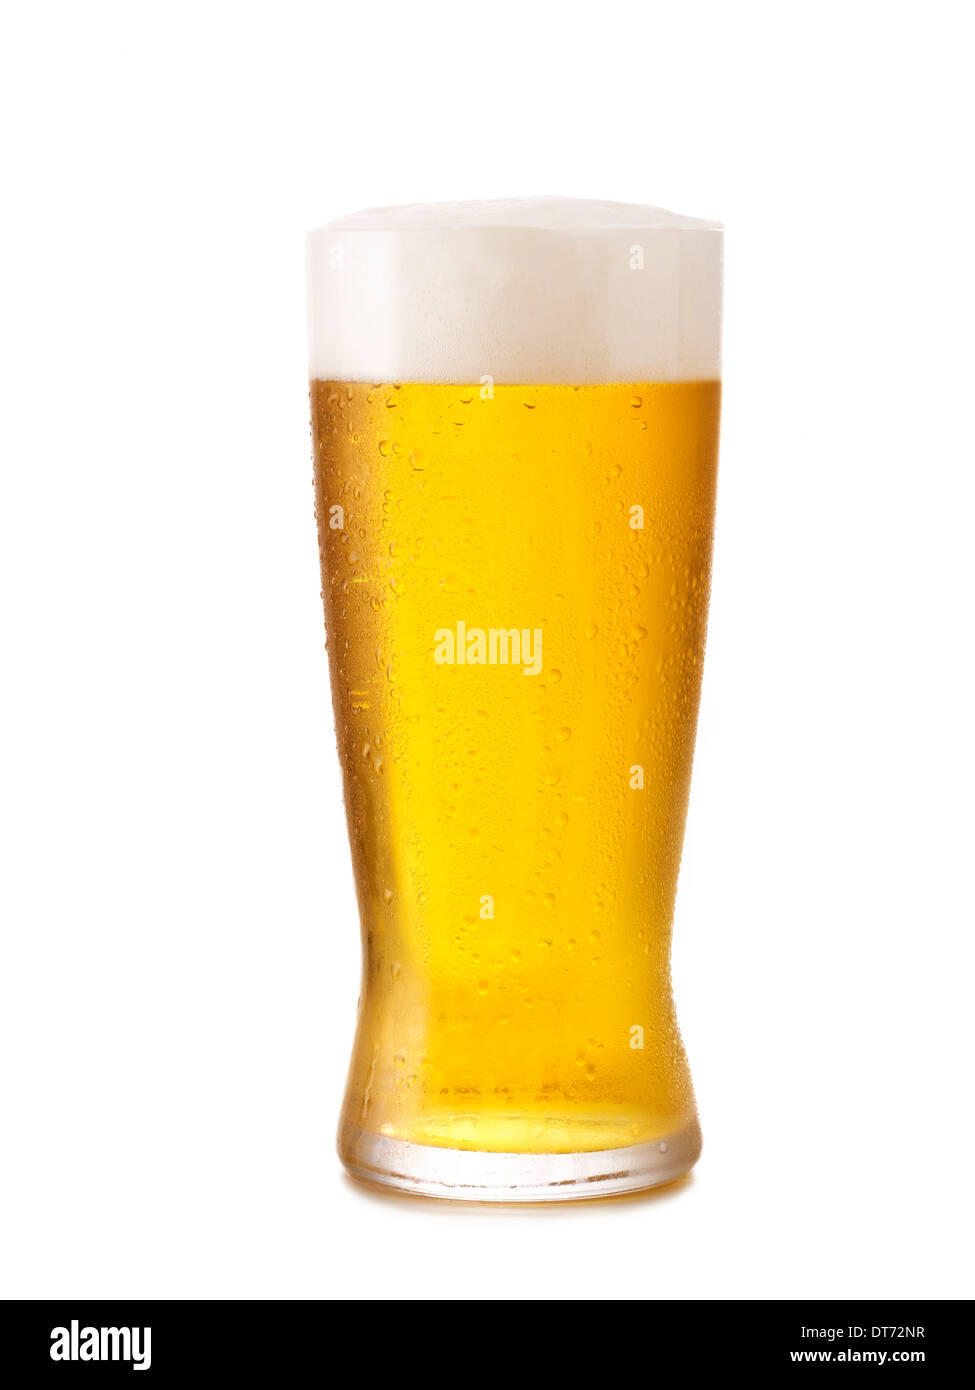 An Icy cold glass of light beer with condensation on the glass. - Stock Image